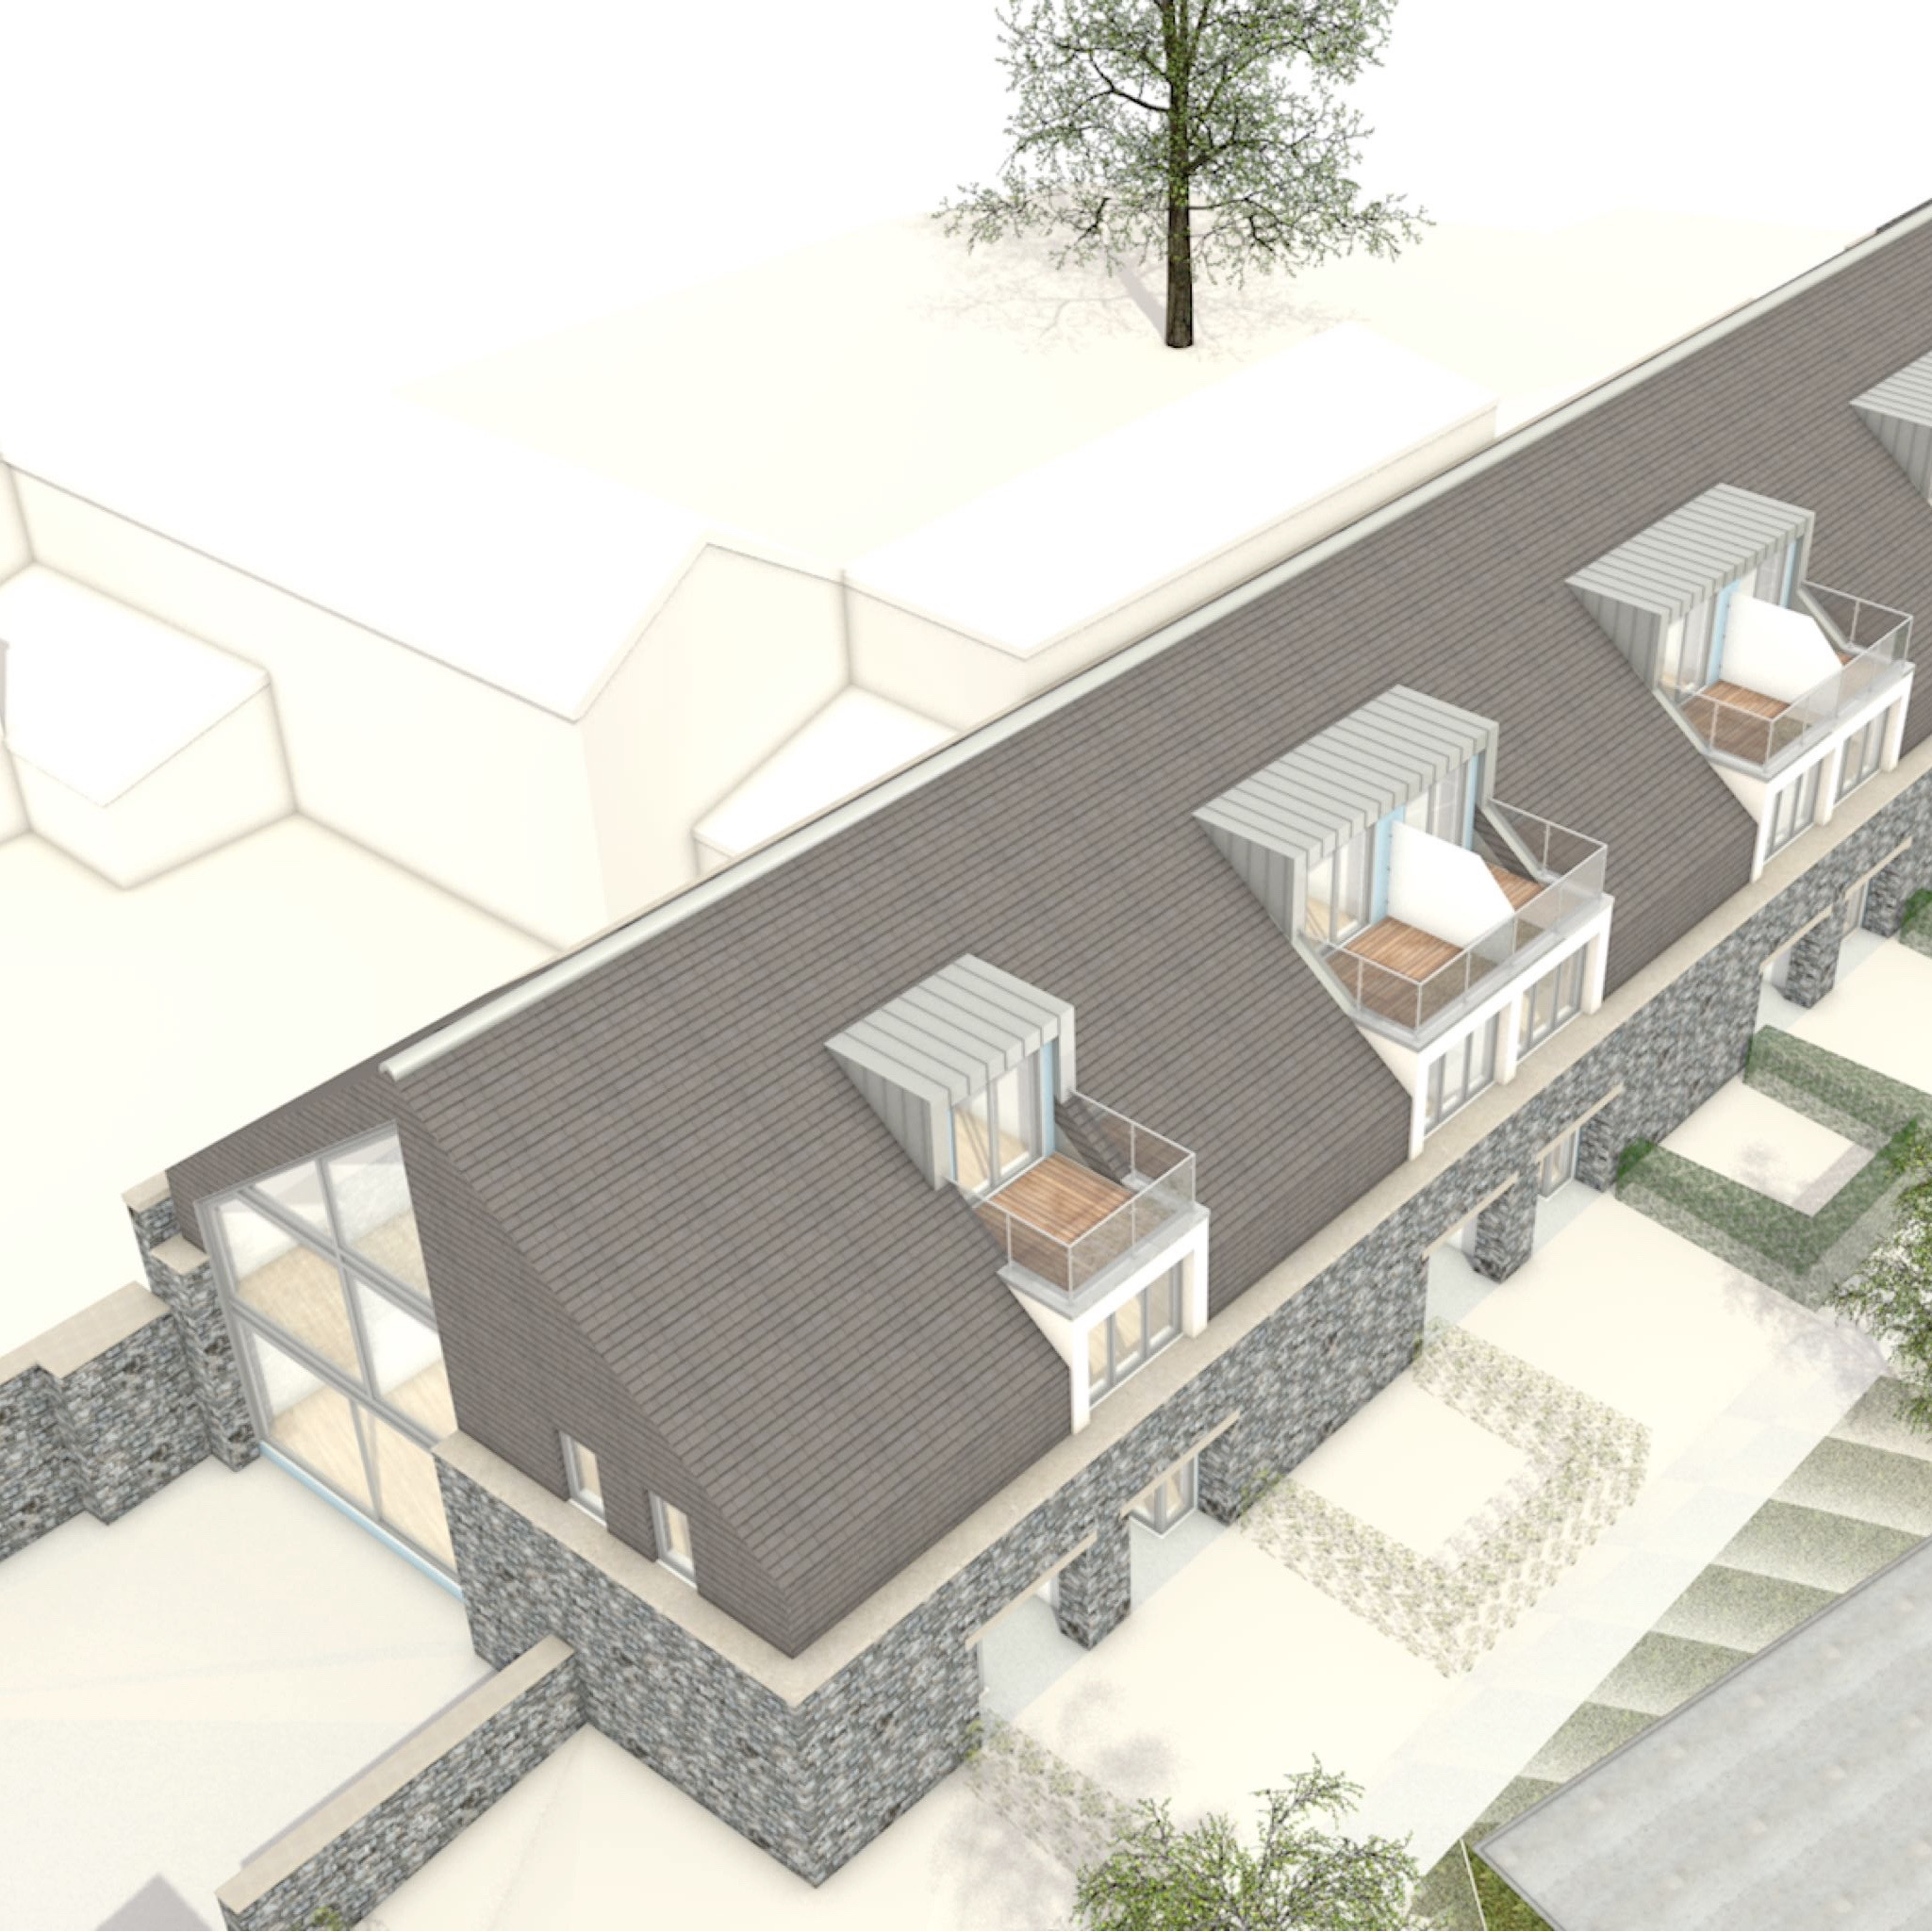 Planning permission granted for 10 new houses in Nailsea